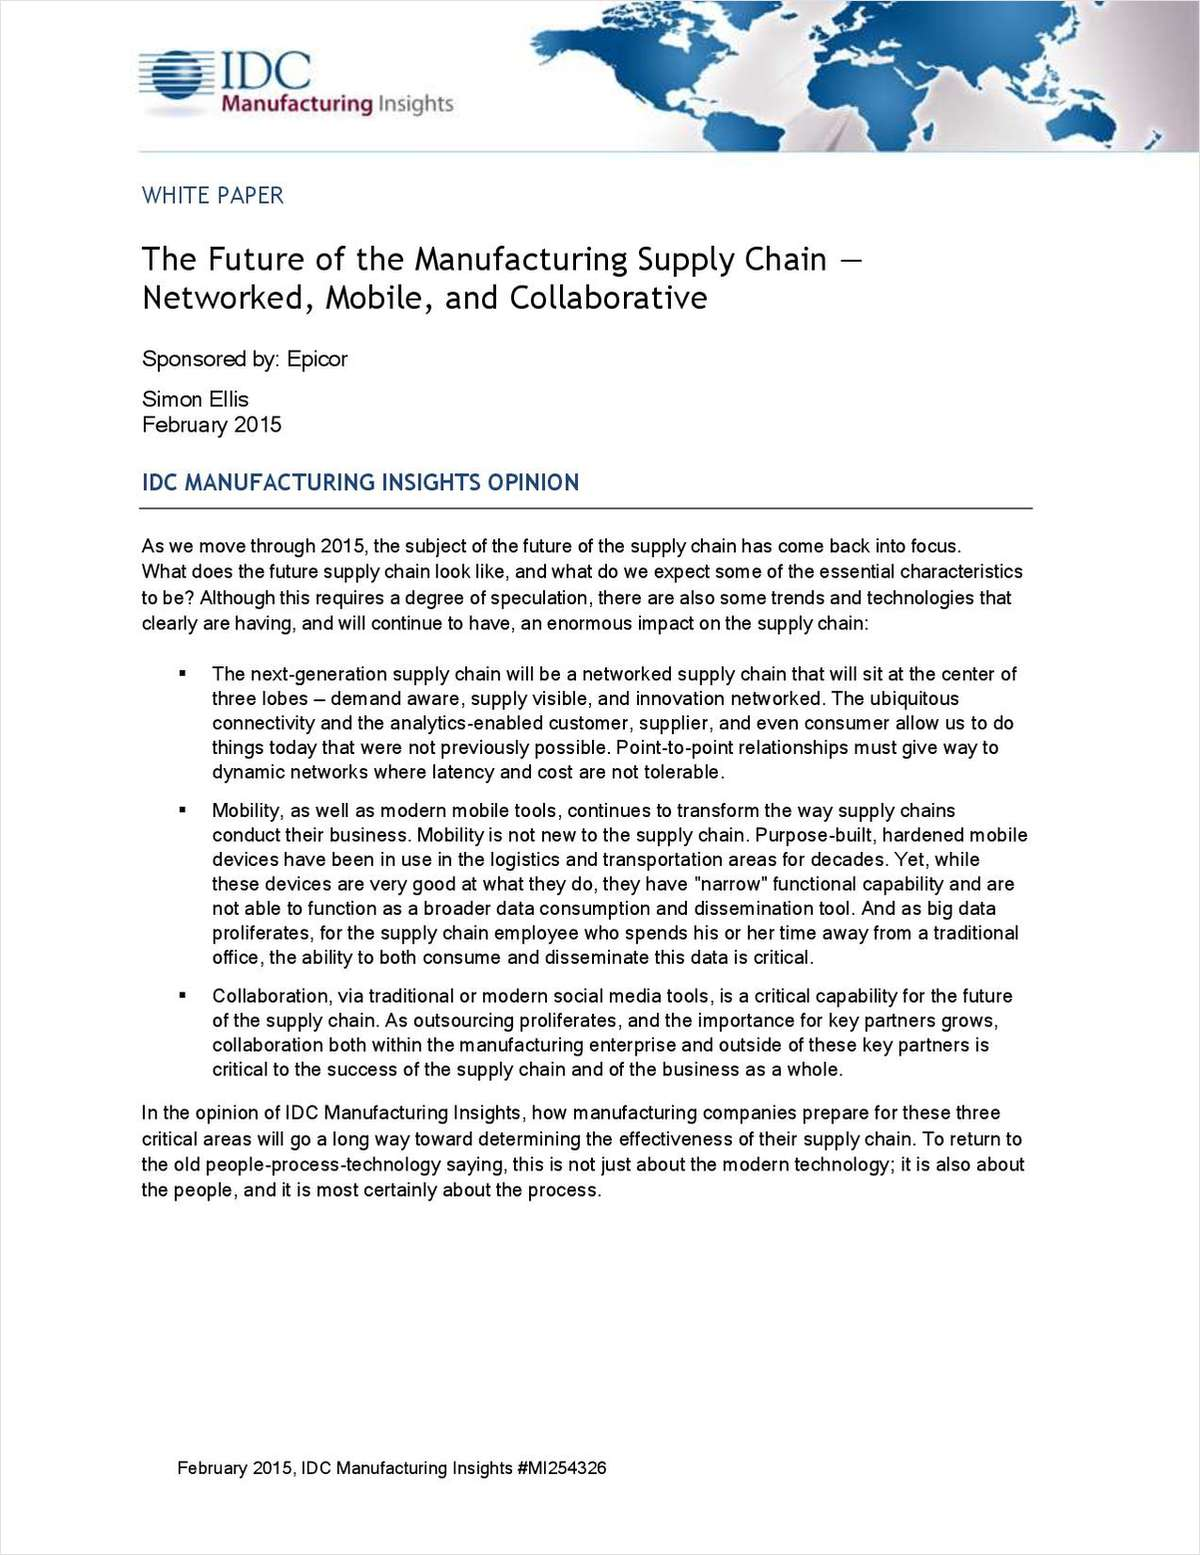 The Future of the Manufacturing Supply Chain - Networked, Mobile, and Collaborative